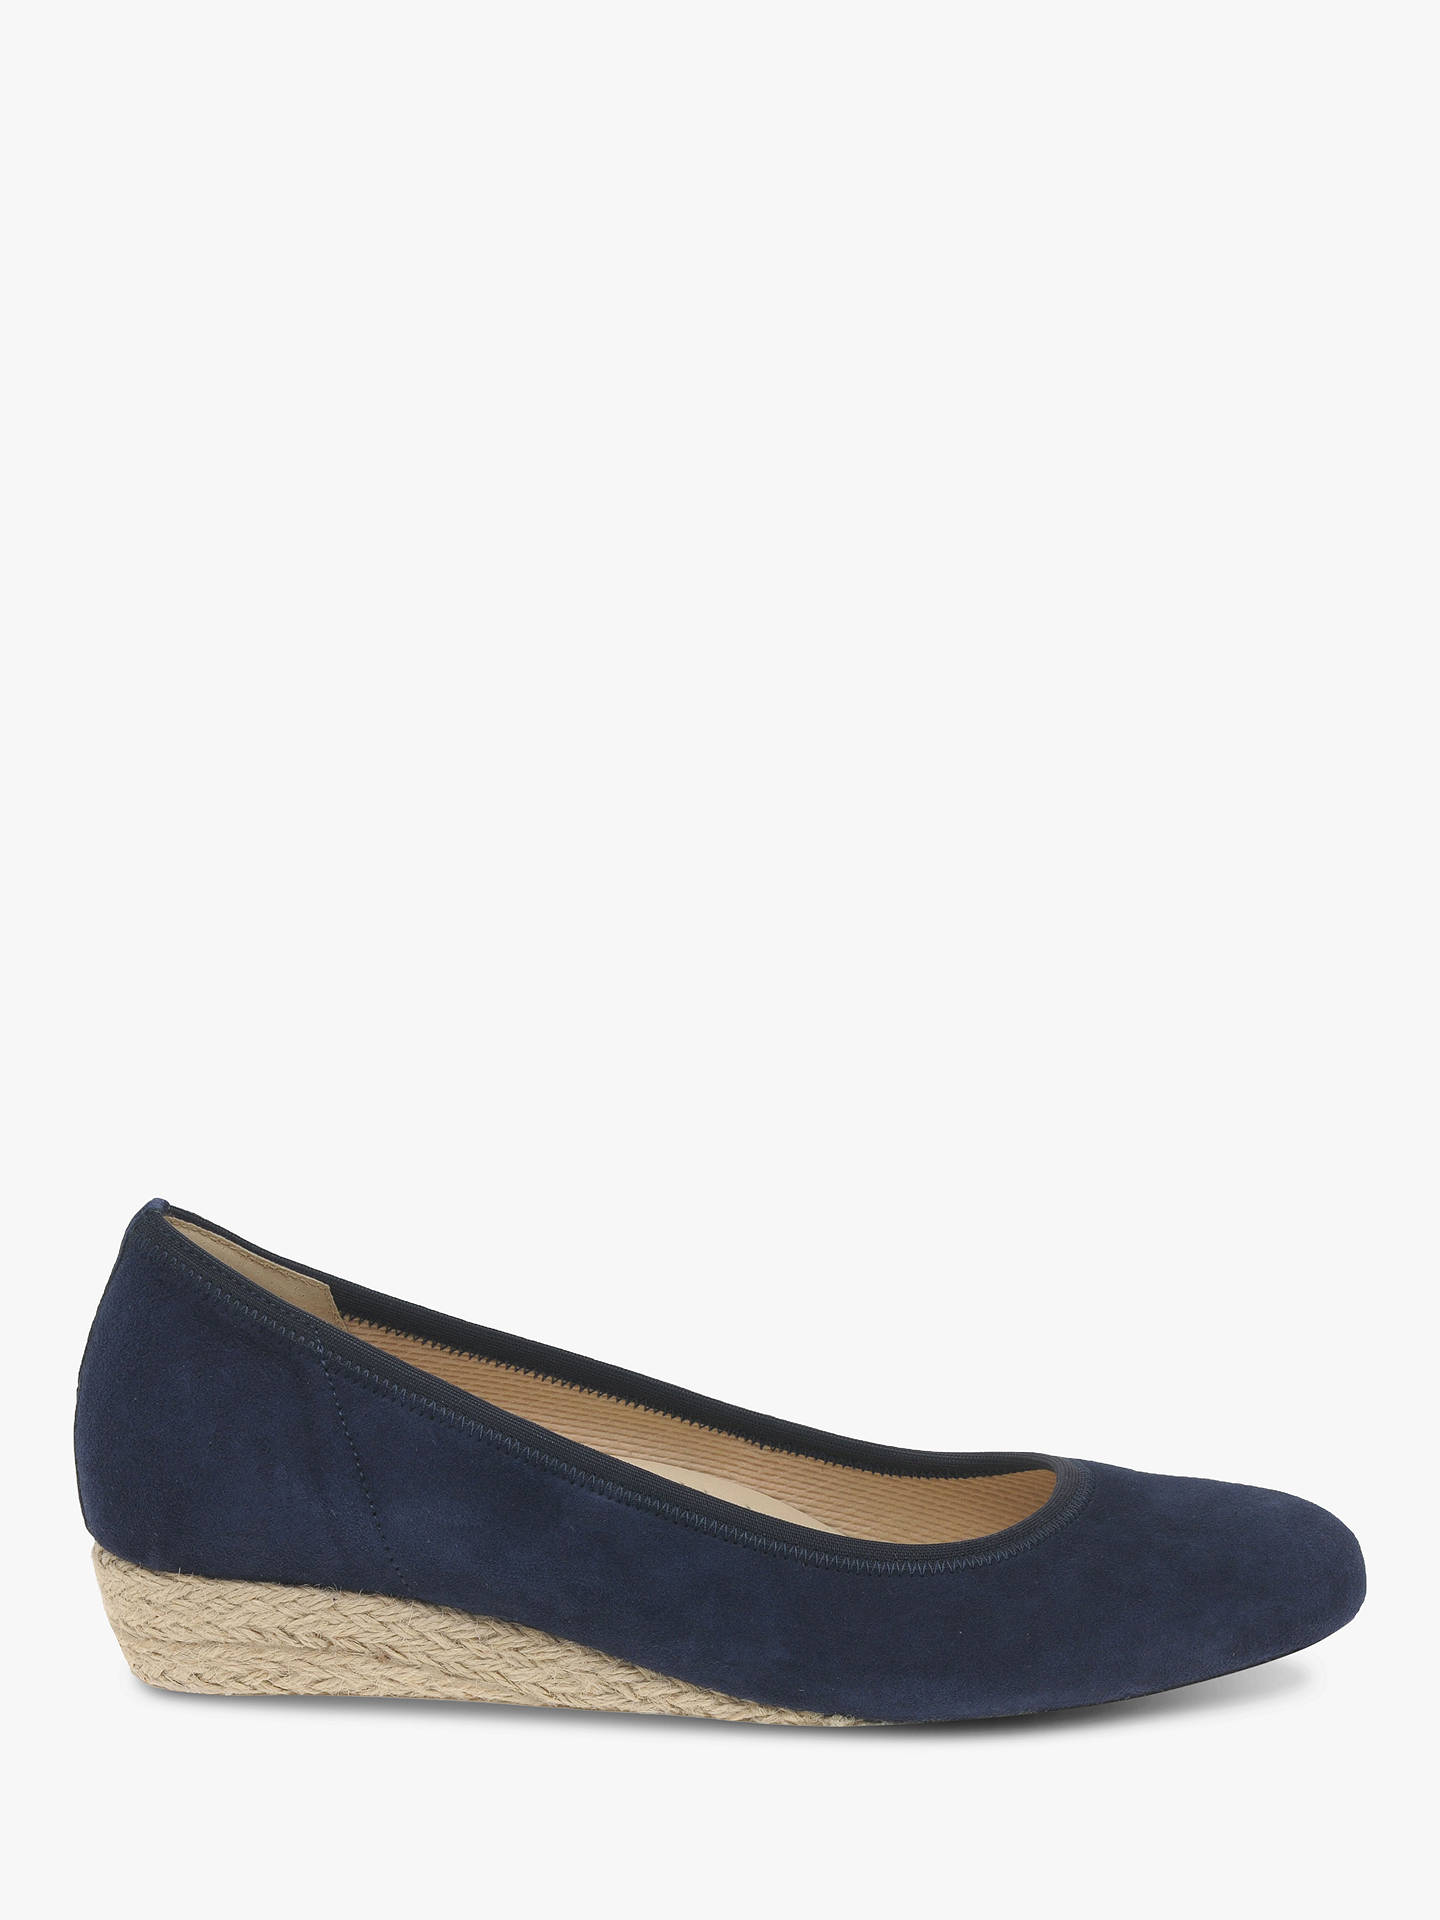 c1e771abe0714 Buy Gabor Epworth Wide Fit Espadrille Wedge Pumps, Navy Suede, 4 Online at  johnlewis ...